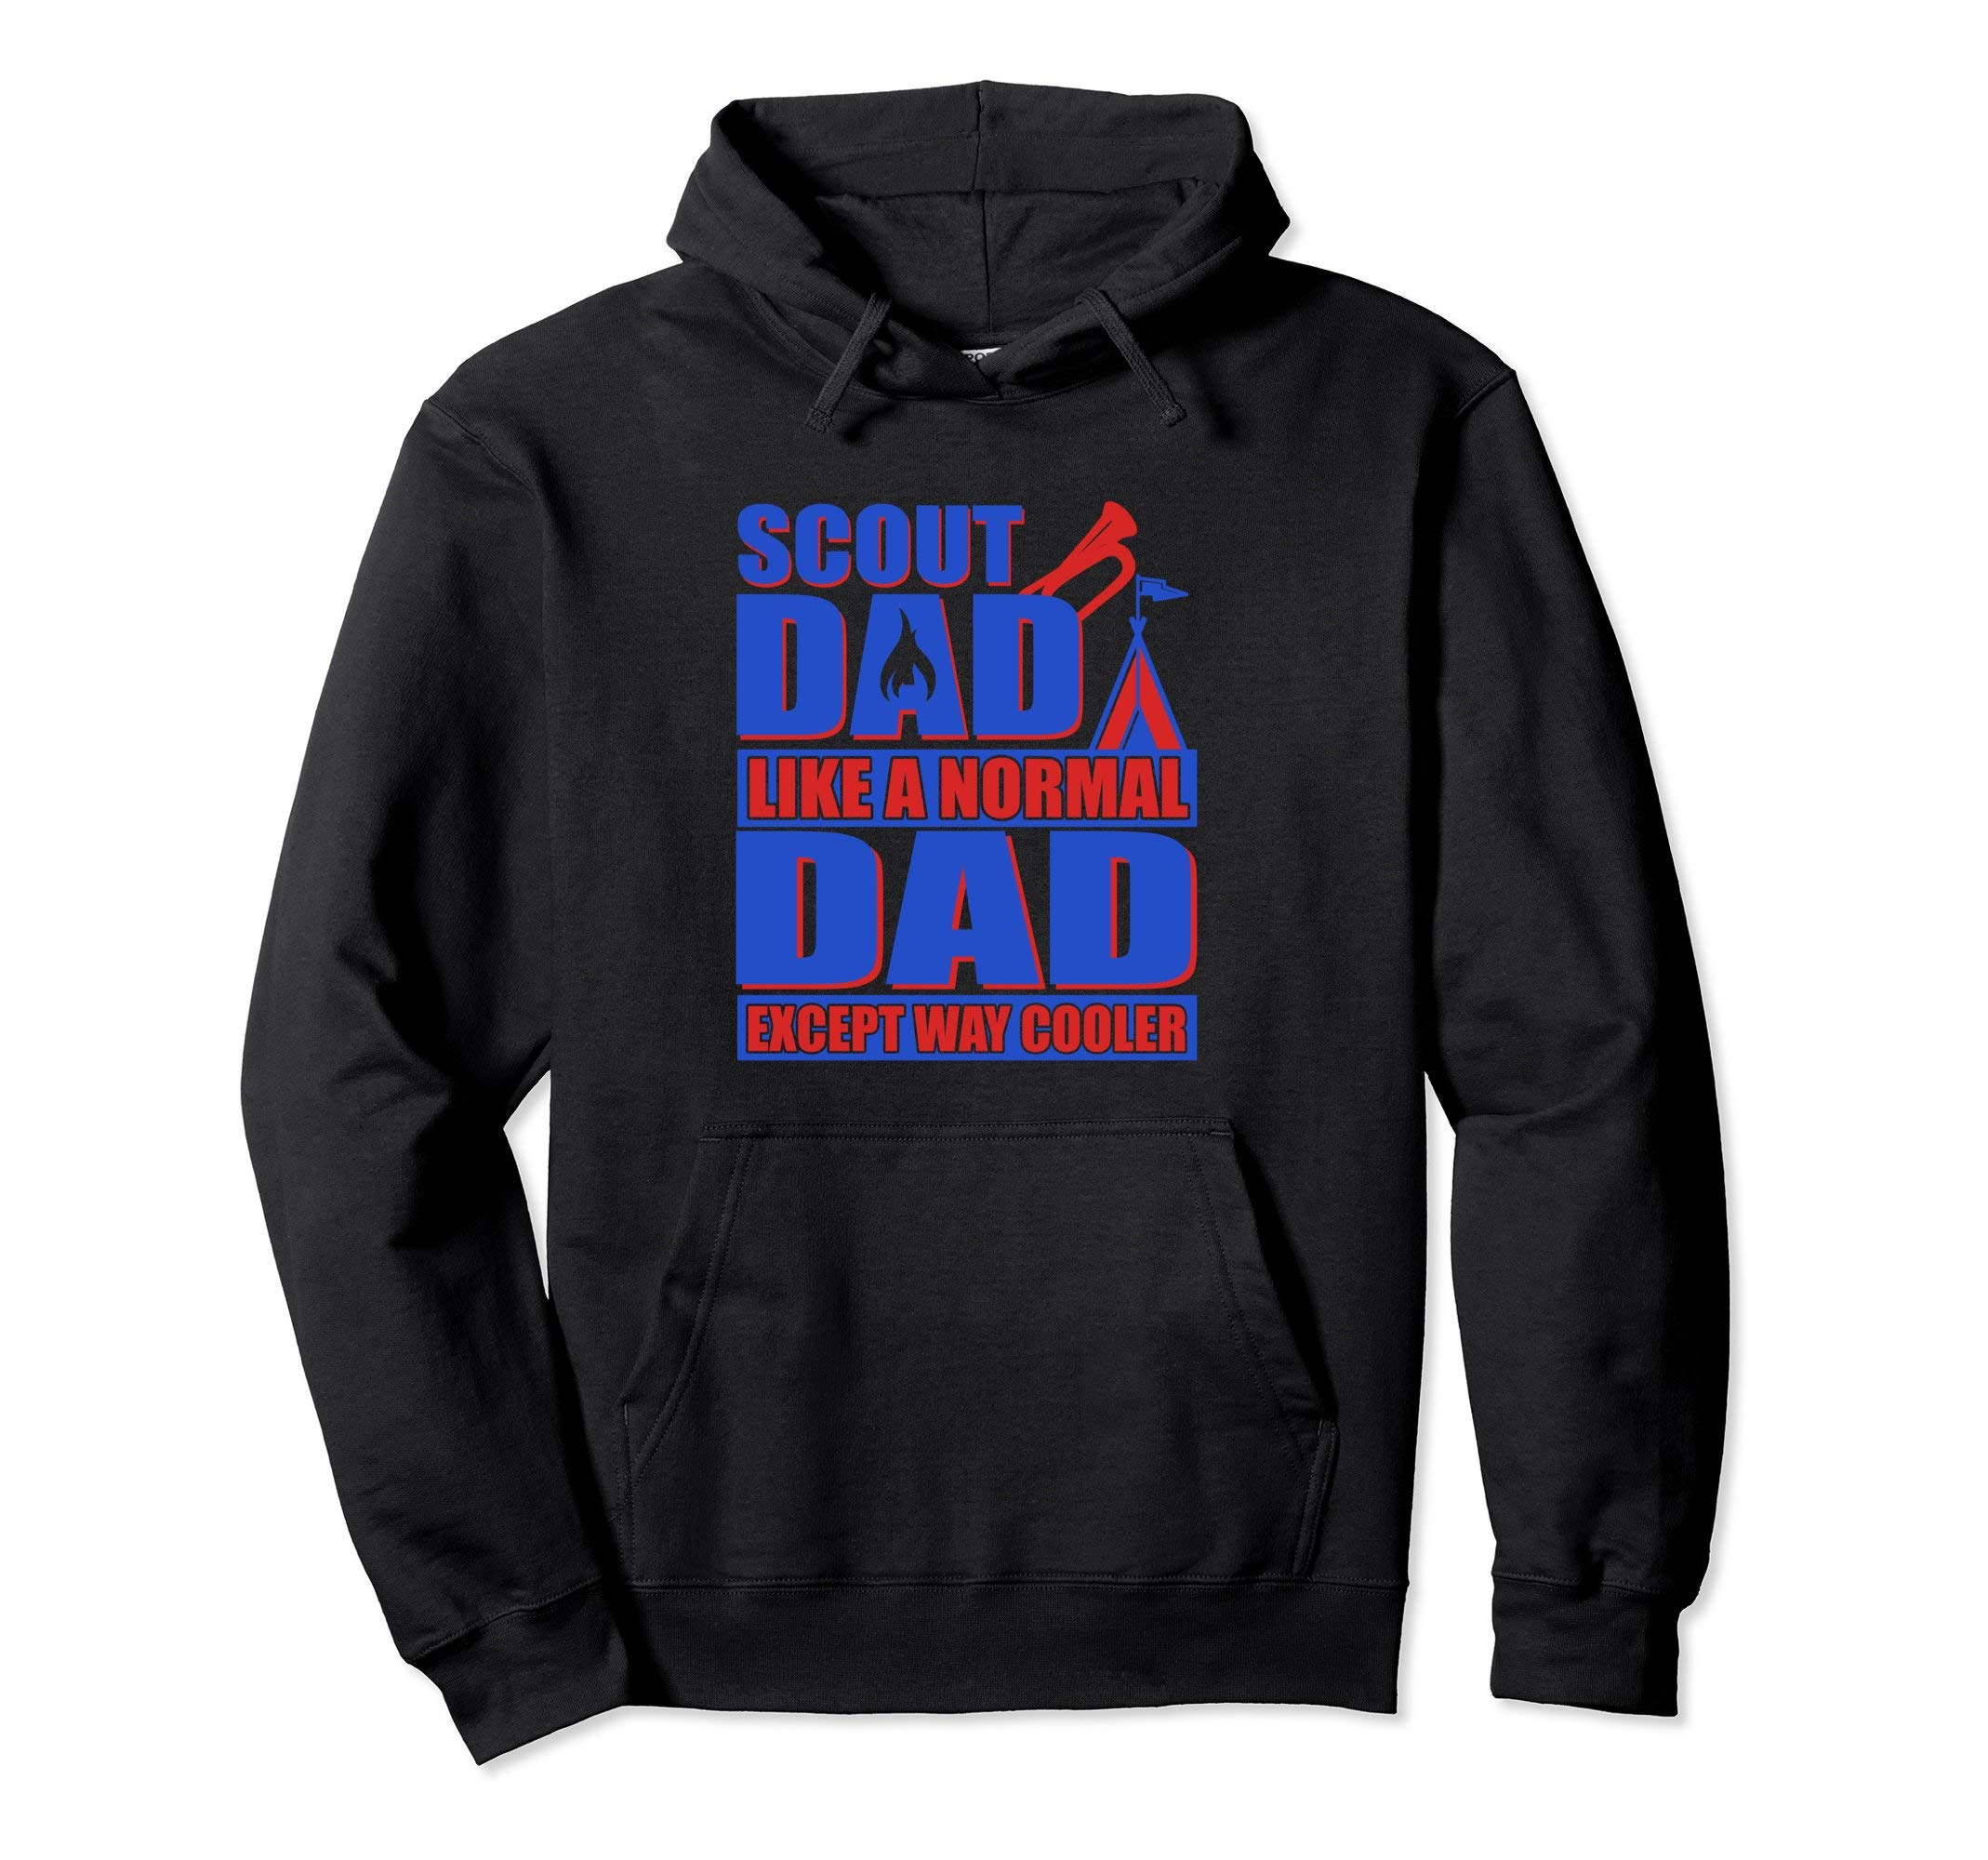 Scout Dad Cub Camping Scouting Leader Boy Gift Hiking Hoodie by Scouting Shirts By Ark